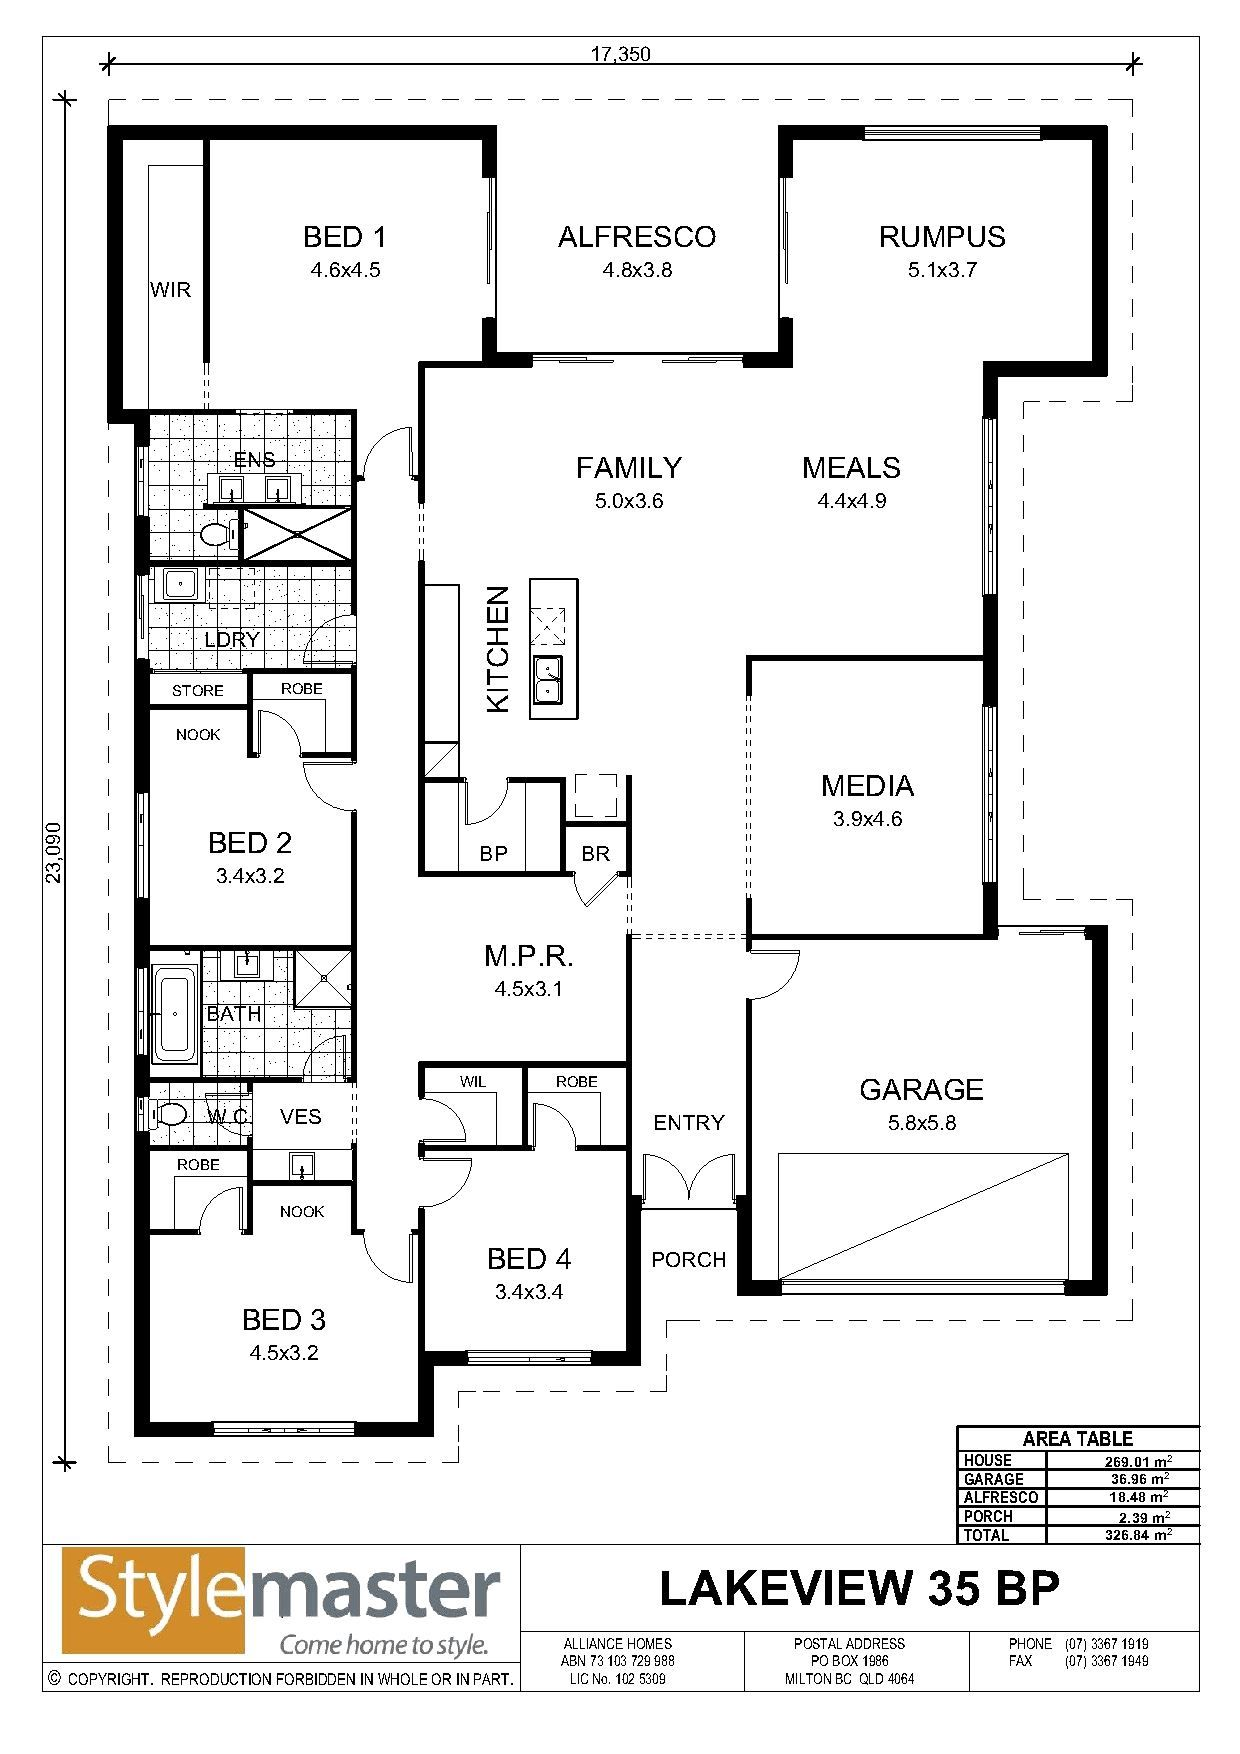 Our Homes View Lakeview 35 Bp Stylemaster Homes Lake View Stylemaster House Blueprints